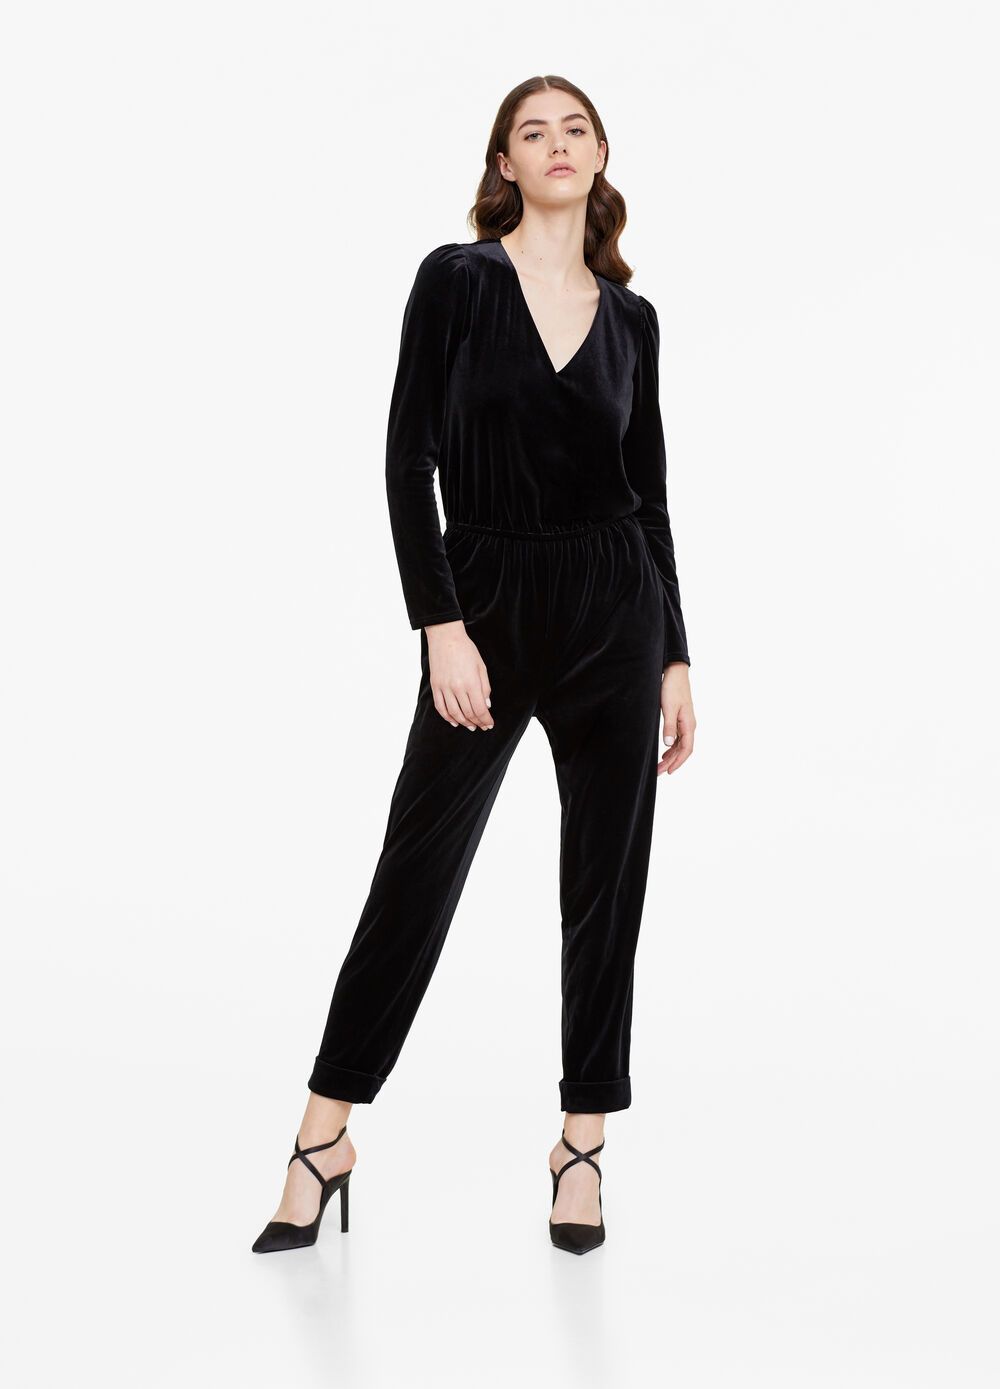 V-neck playsuit in velvet